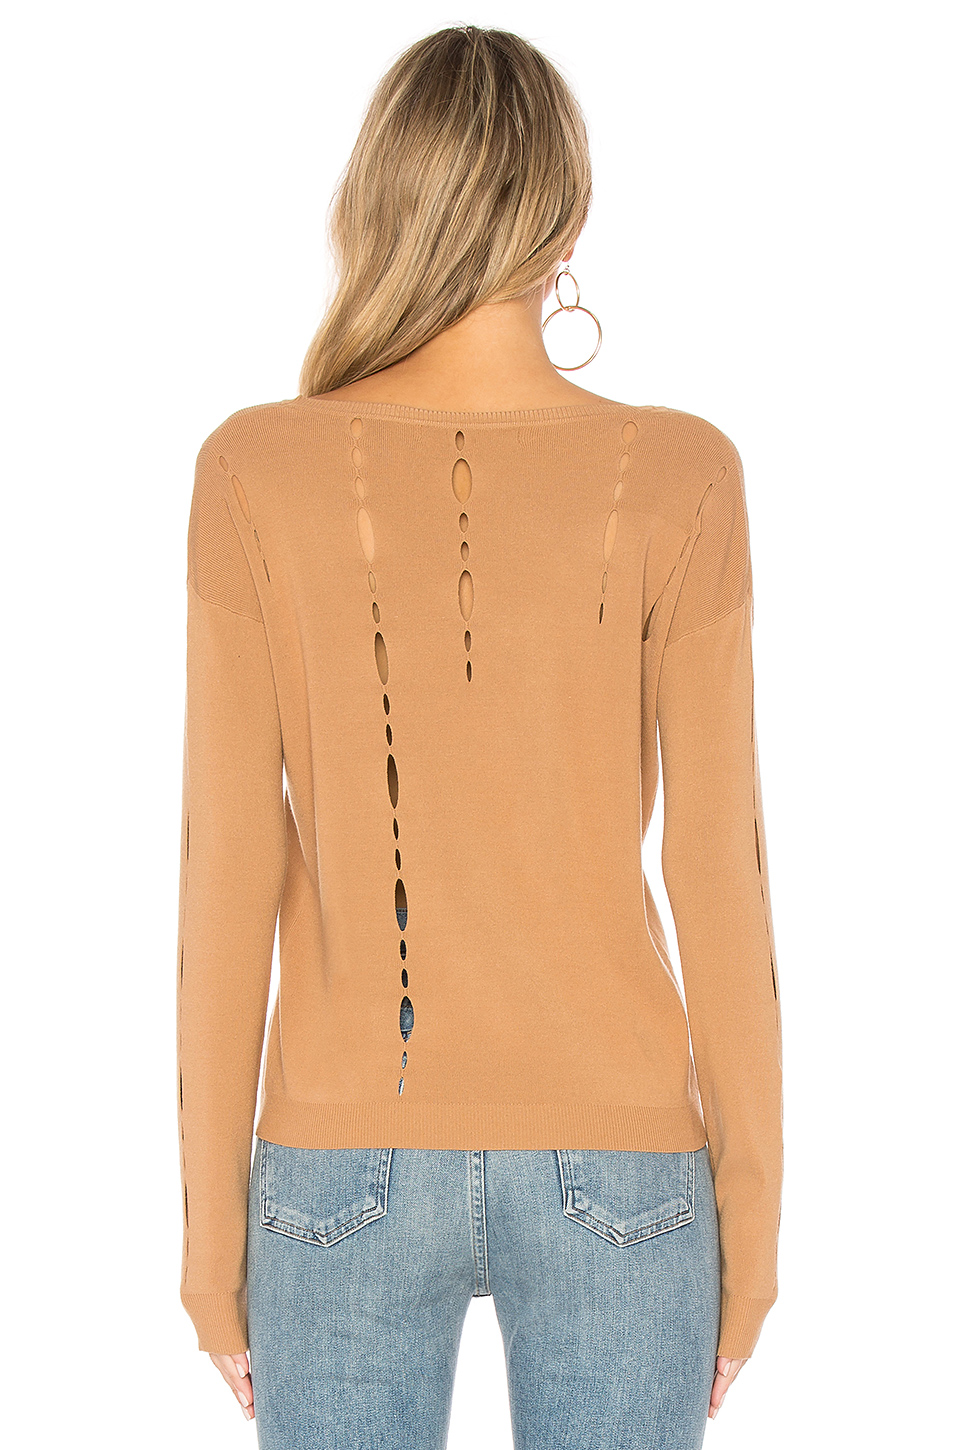 One Grey Day Pruitt Sweater